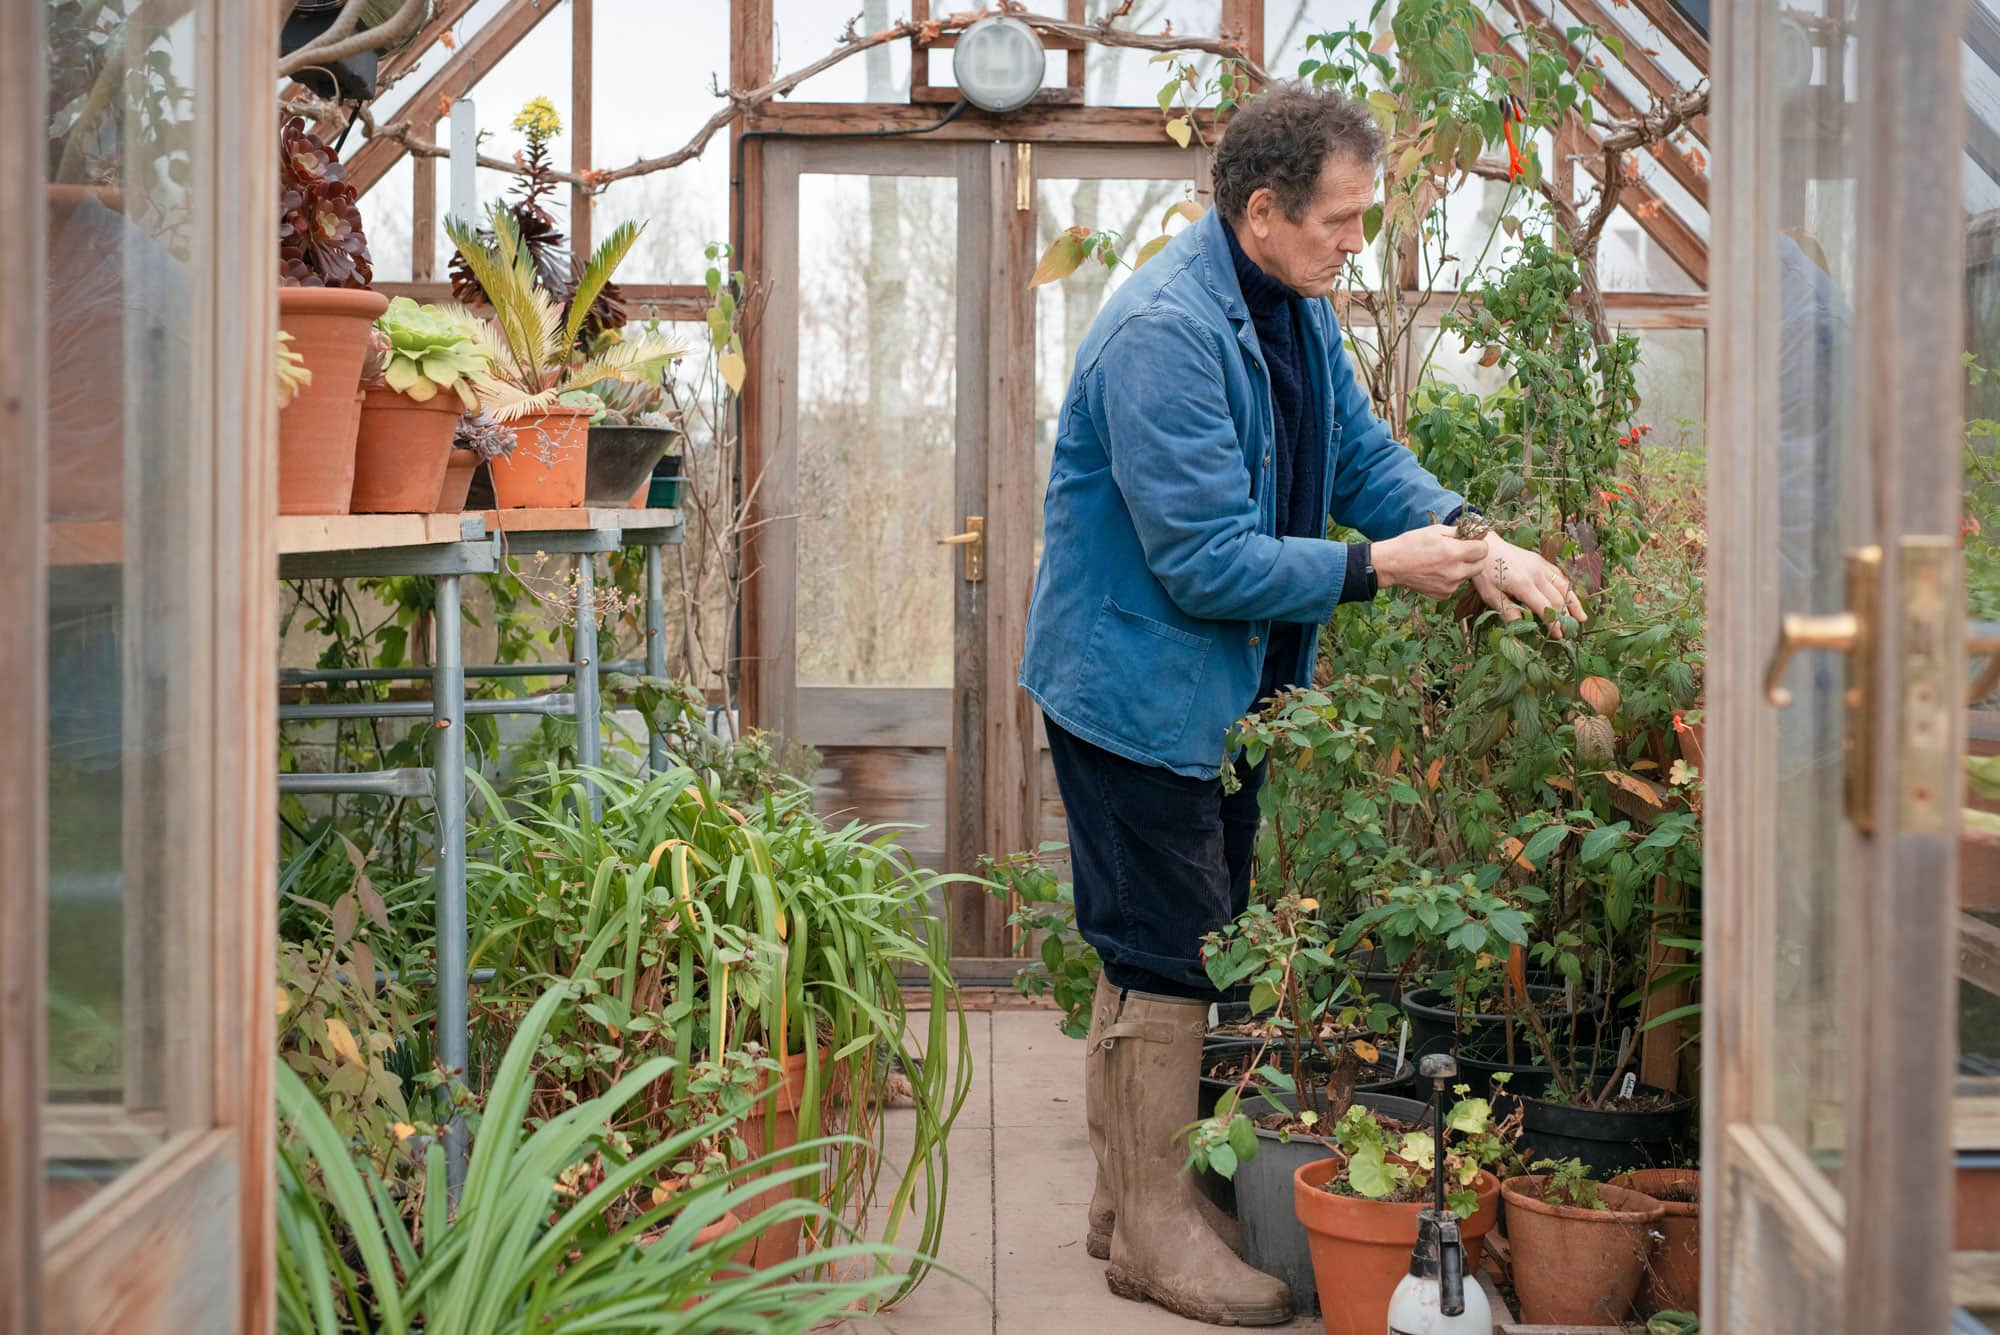 monty don; bbc; gardener's world; garden; nature; netflix; spring; outdoors; grow your own; vegetable; therapy; mental health; new york times; herefordshire; portrait; portraiture; photographer